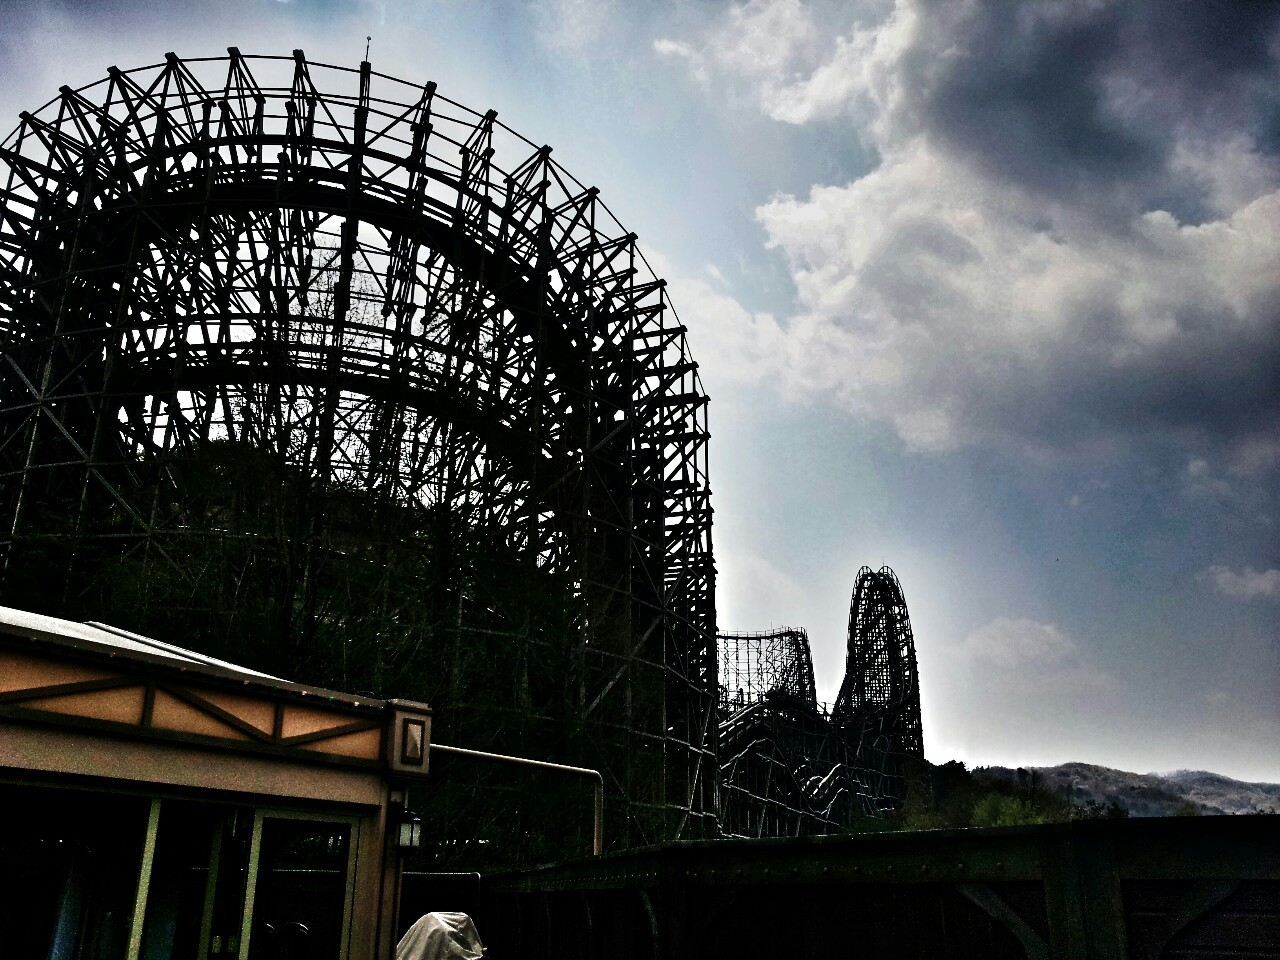 Steepest wooden roller coaster in the world. Everland, Seoul South Korea